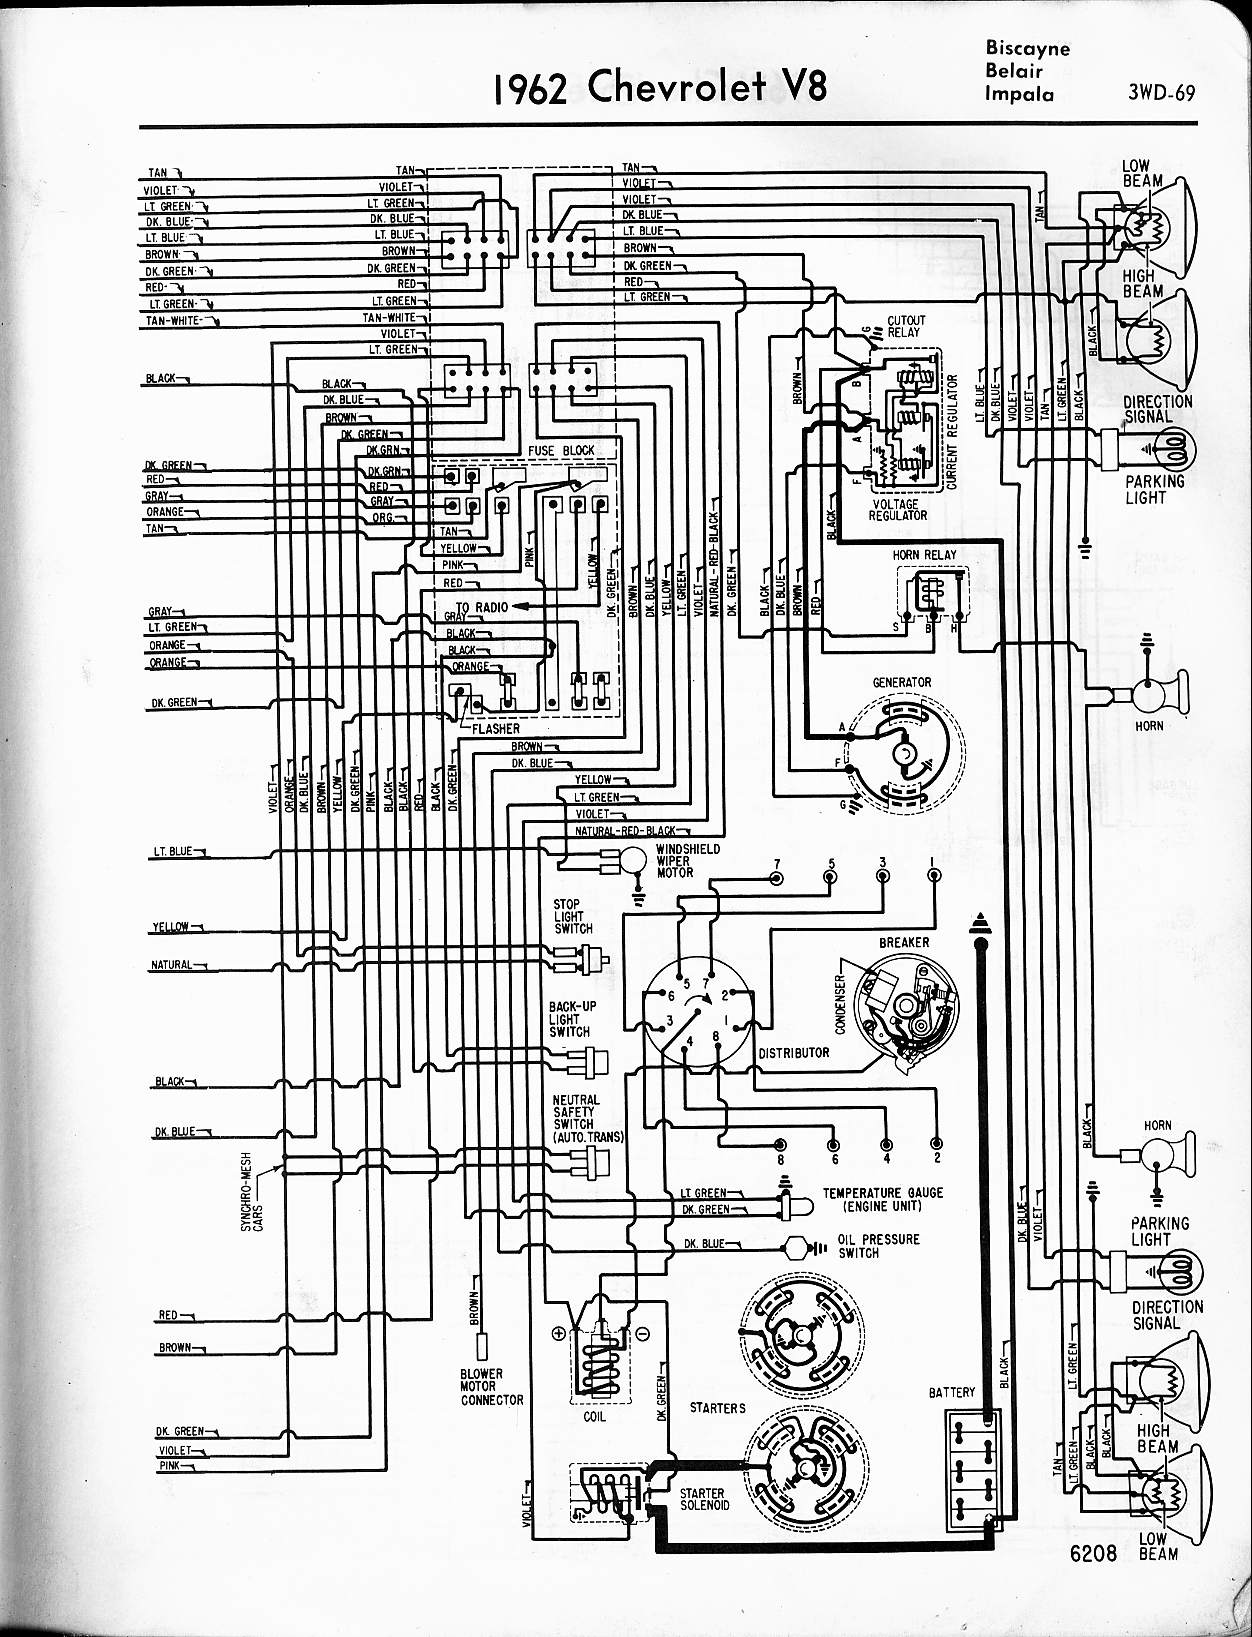 65 Chevy Fuse Box Diagram Wiring 57 1965 Impala Simple Schema1965 Gmc